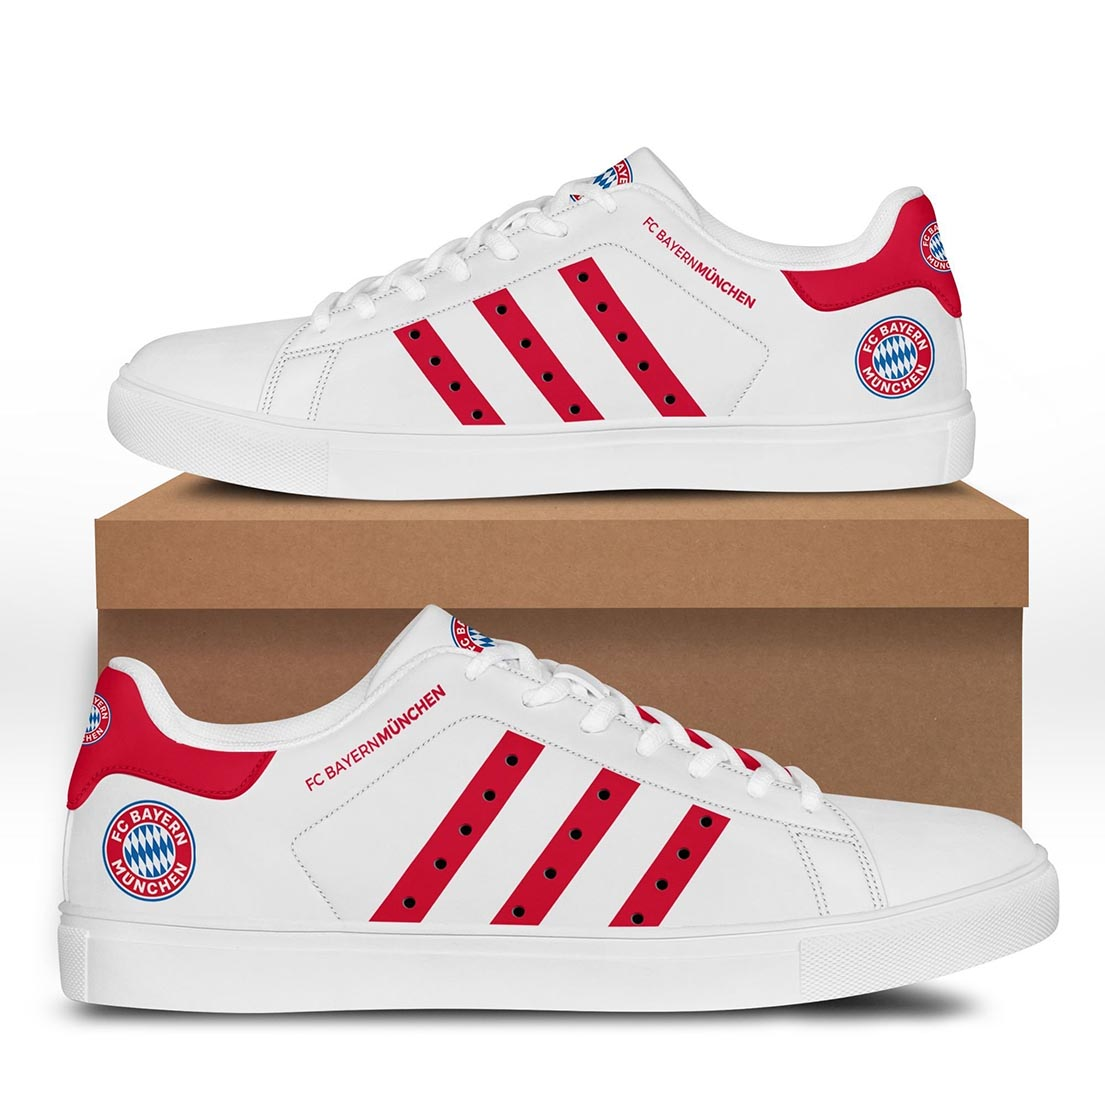 Bayern Munchen stan smith shoes - Picture 1